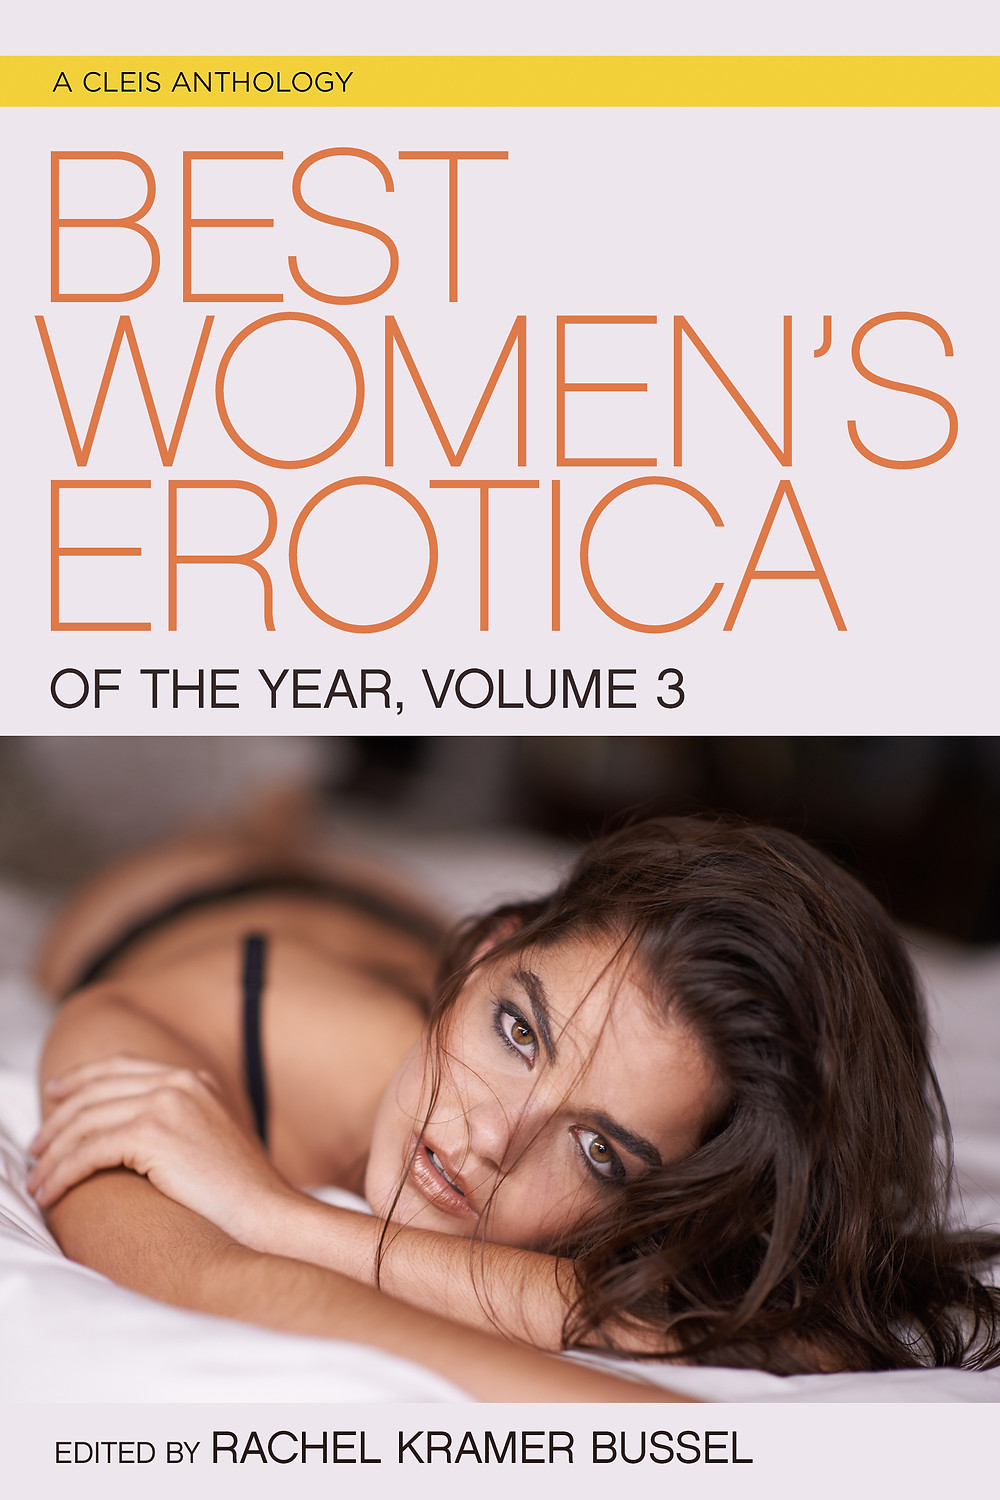 women in bra and panties lying on bed erotic book cover